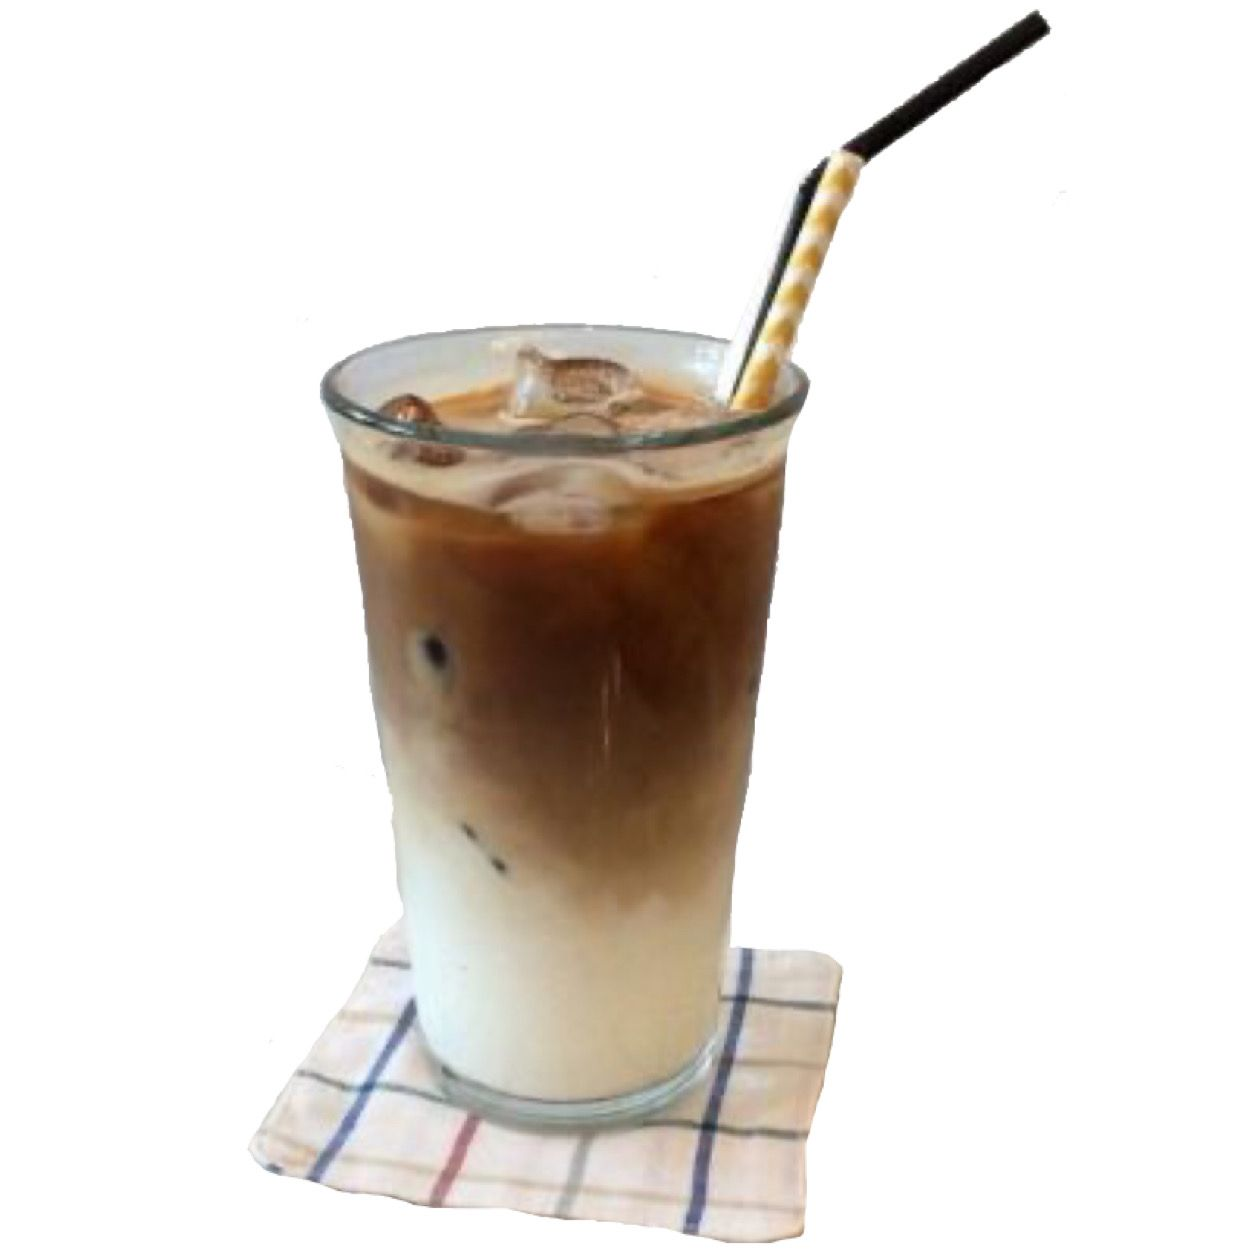 Iced Coffee W Straw Png Cafe Food Homemade Collage Making